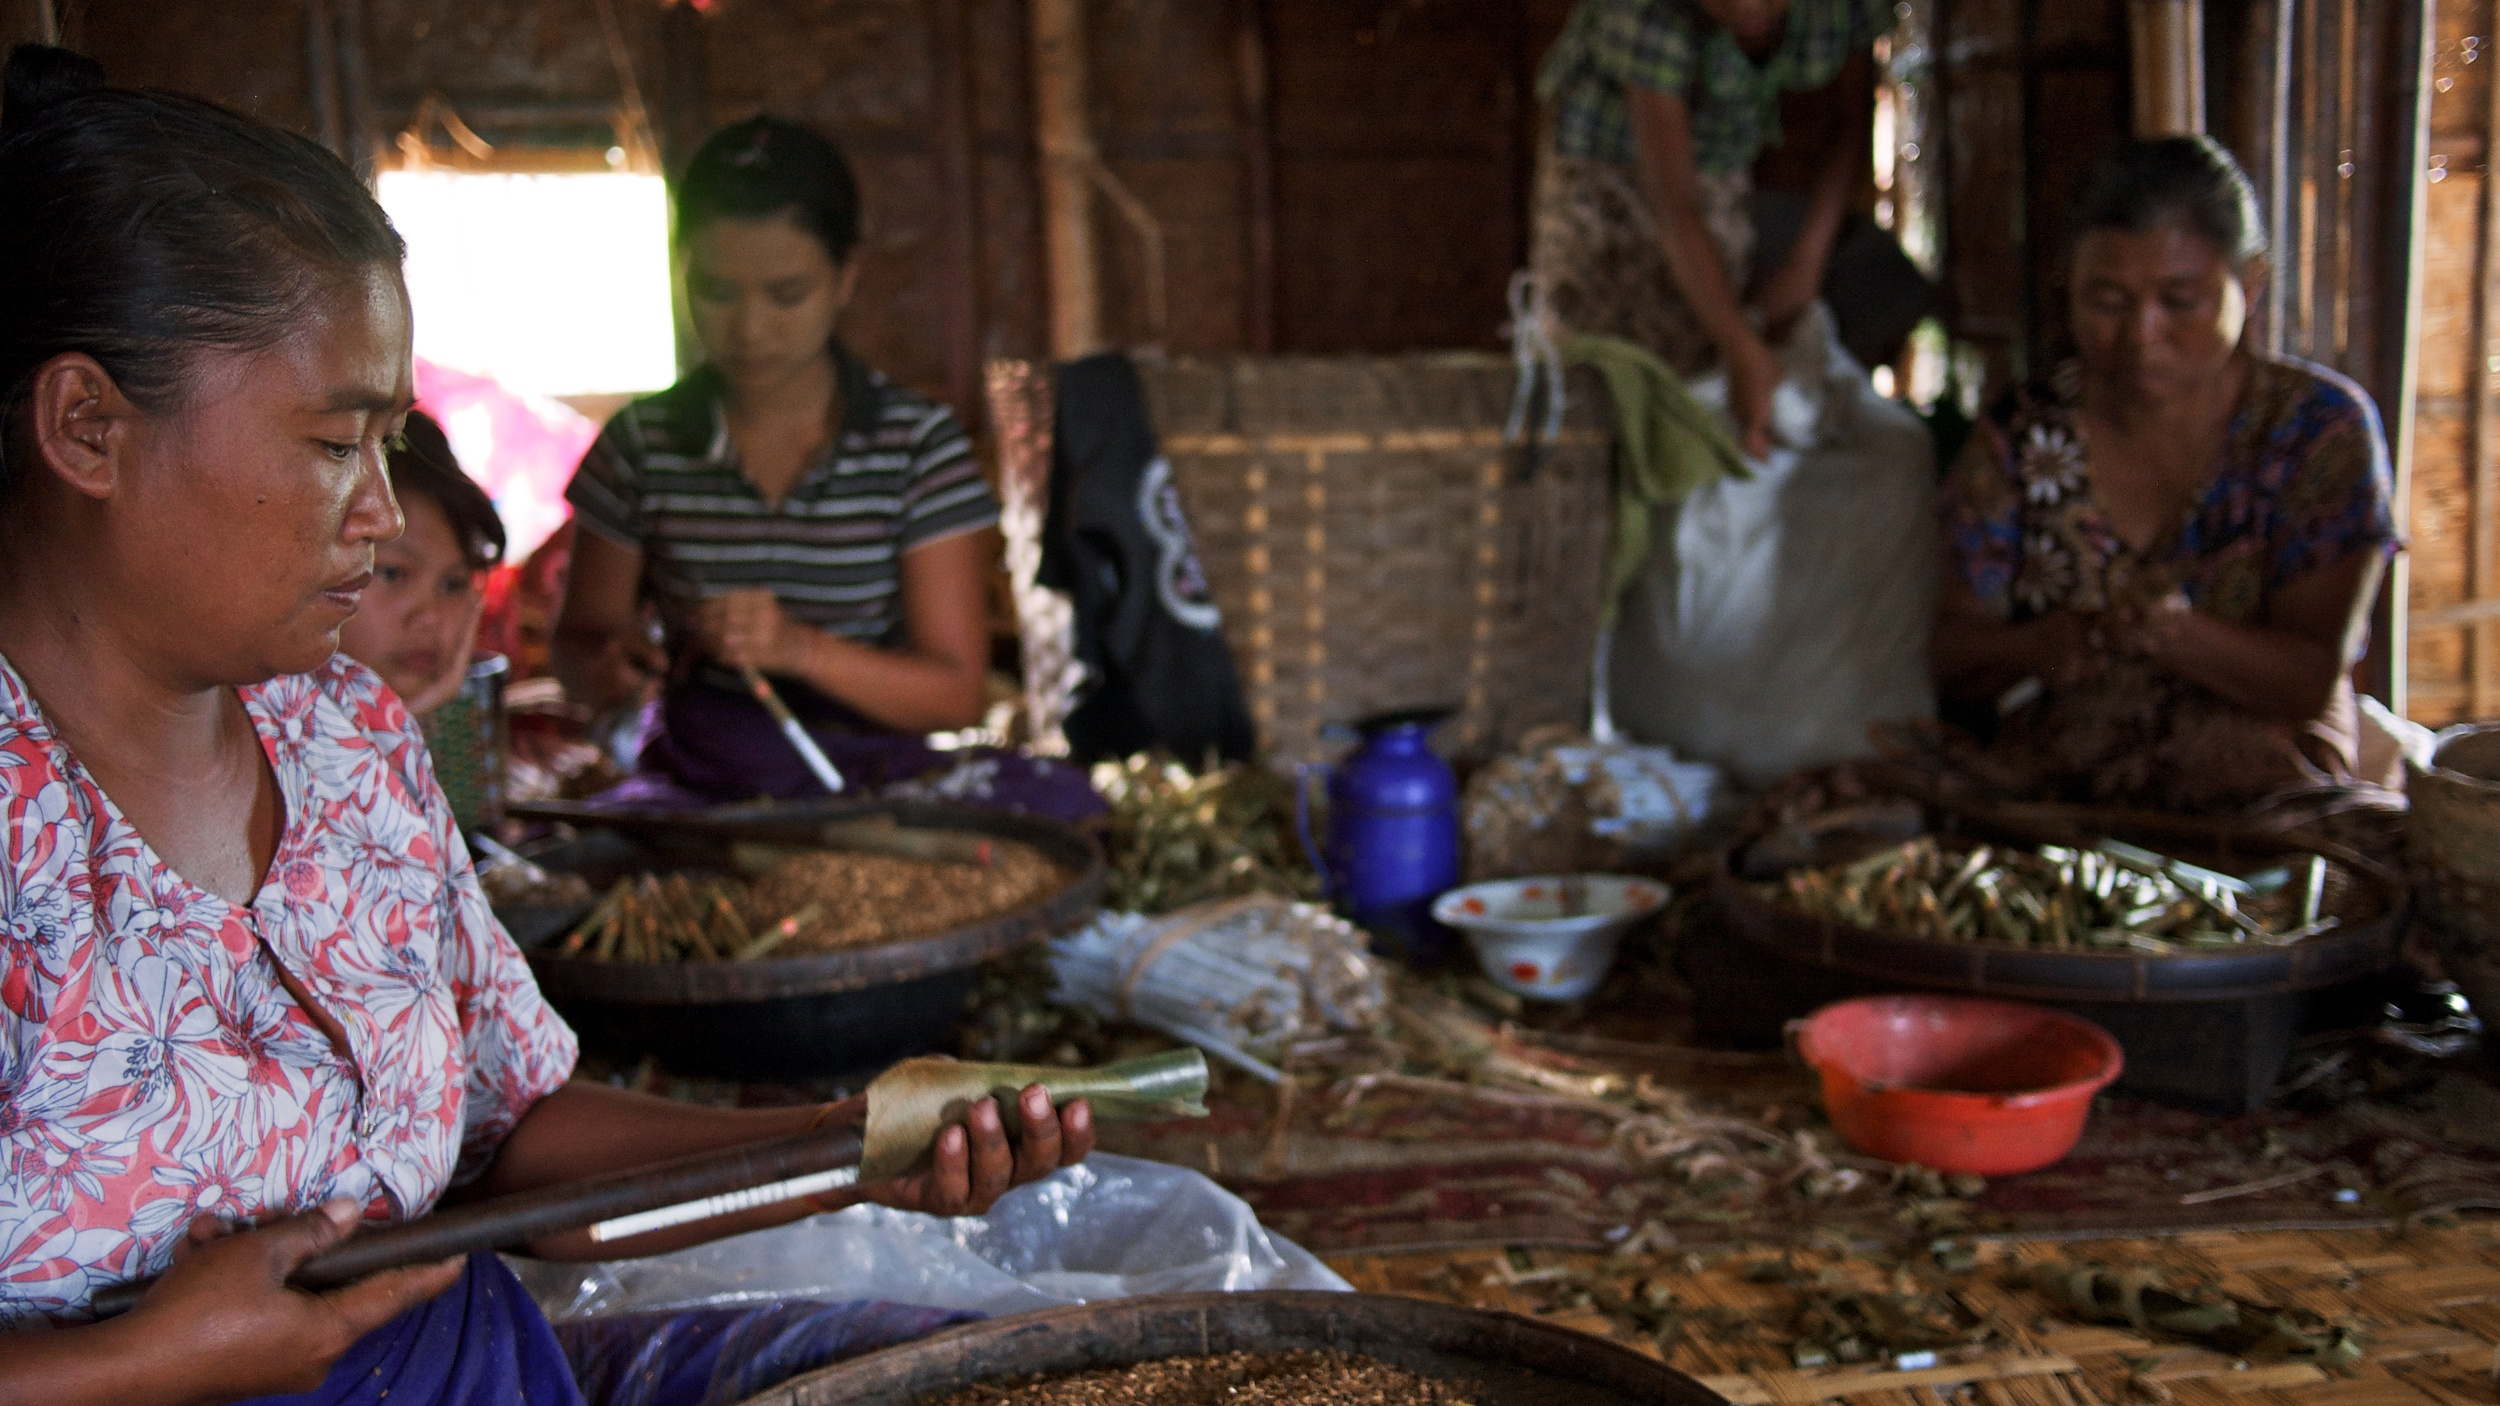 Each woman makes 500-700 cigars per day